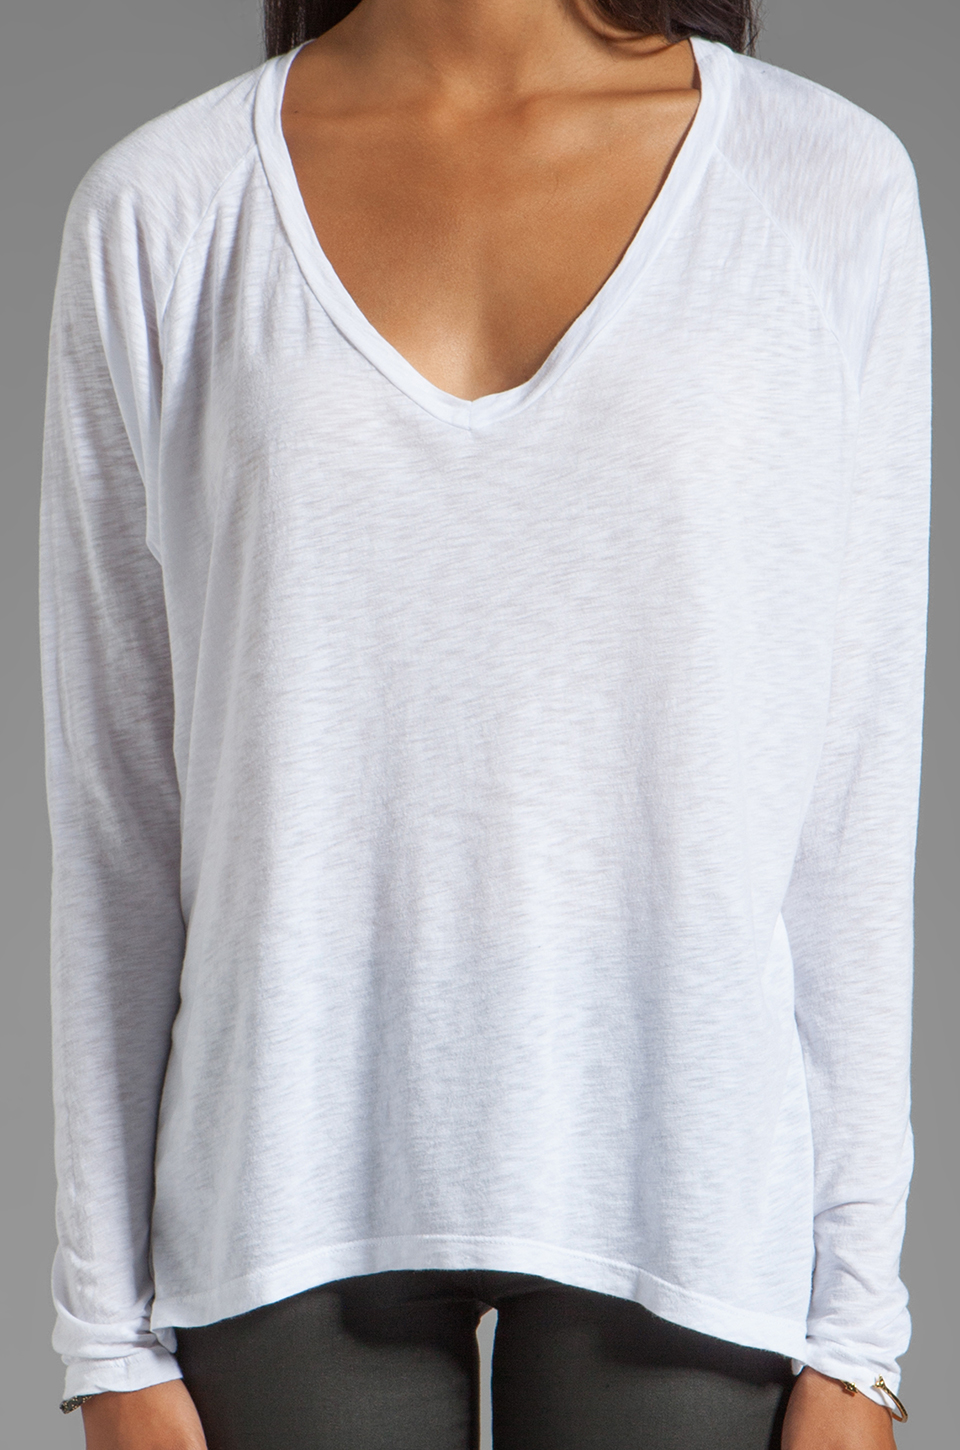 Velvet by Graham & Spencer Gala Lux Slub Long Sleeve V-Neck in White